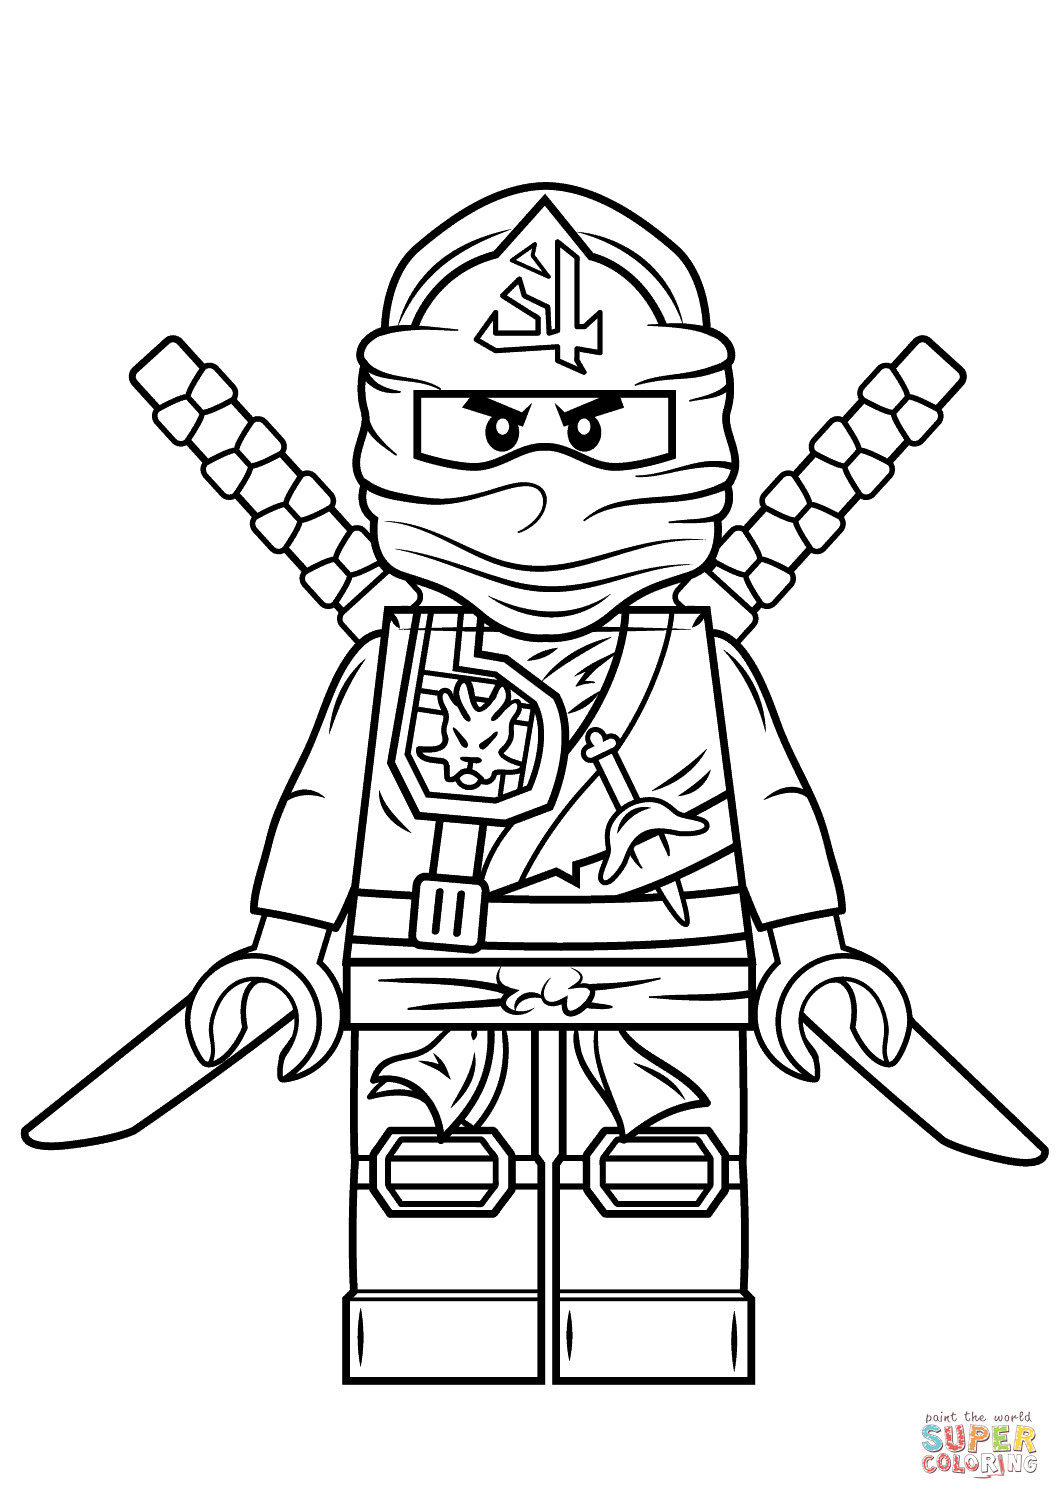 Click the lego ninjago green ninja coloring pages to view printable version or color it online compatible with ipad and android tablets